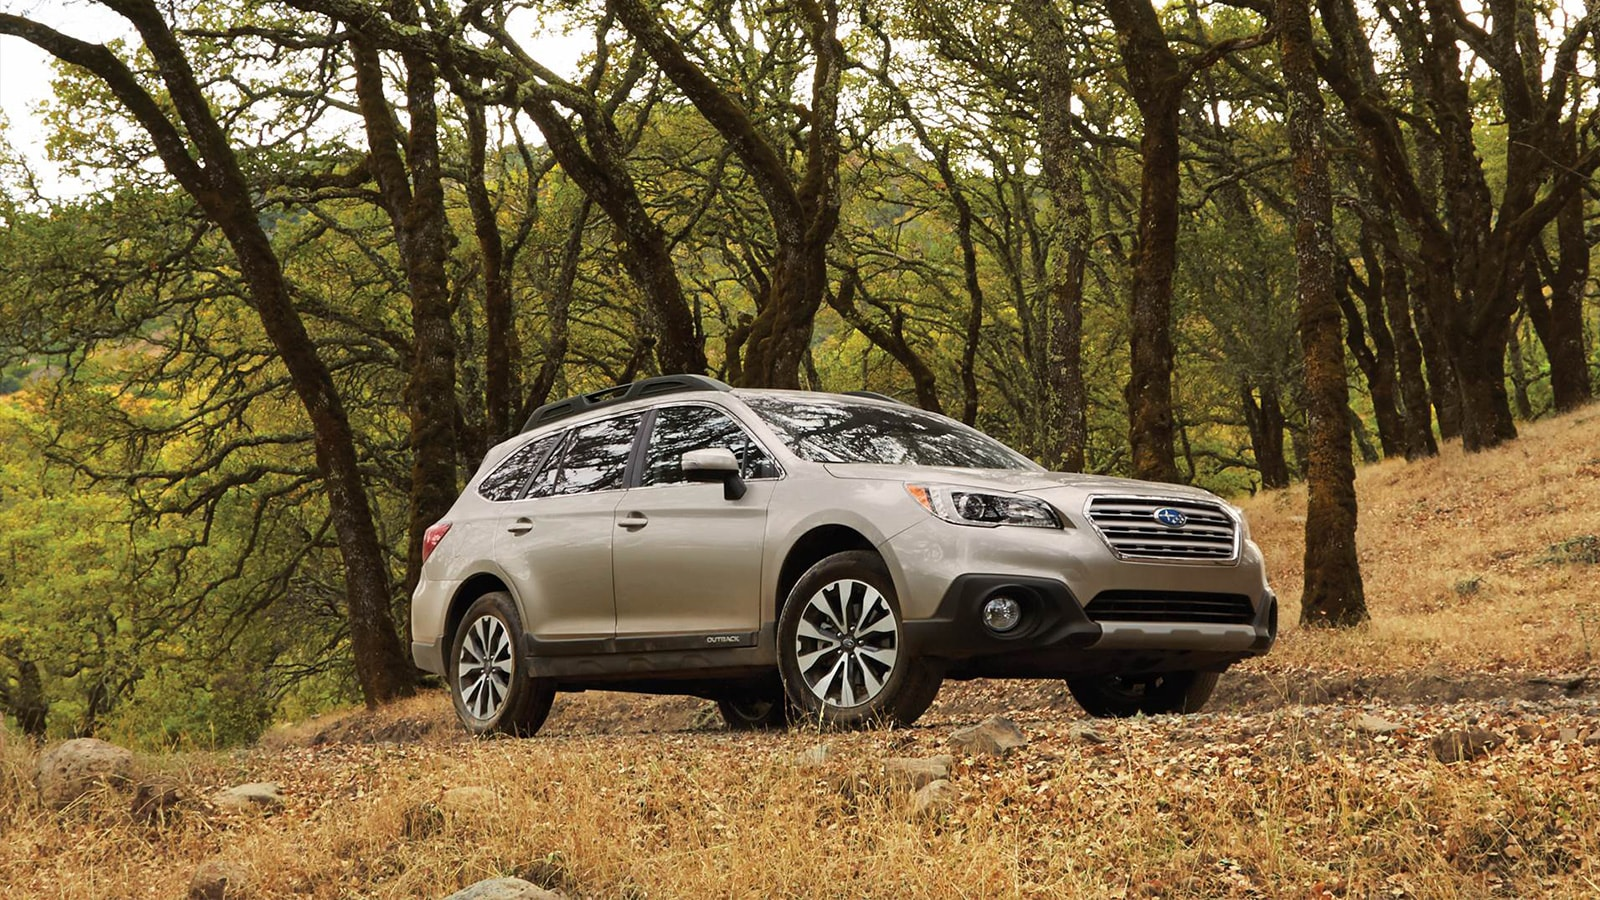 Used Subaru Outback for sale in Wilmington NC